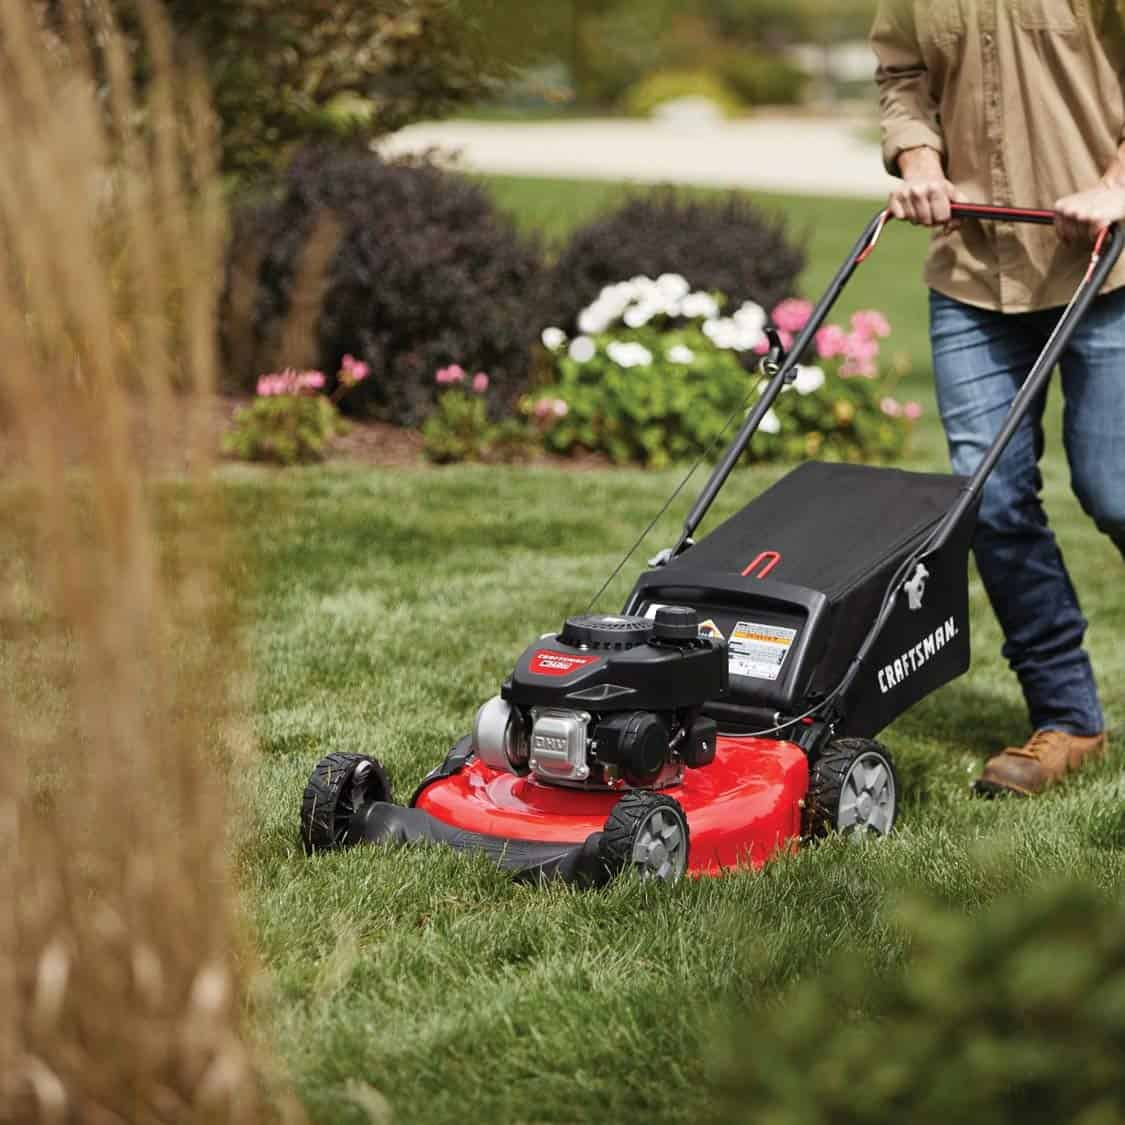 Choosing the Best Lawn Mower